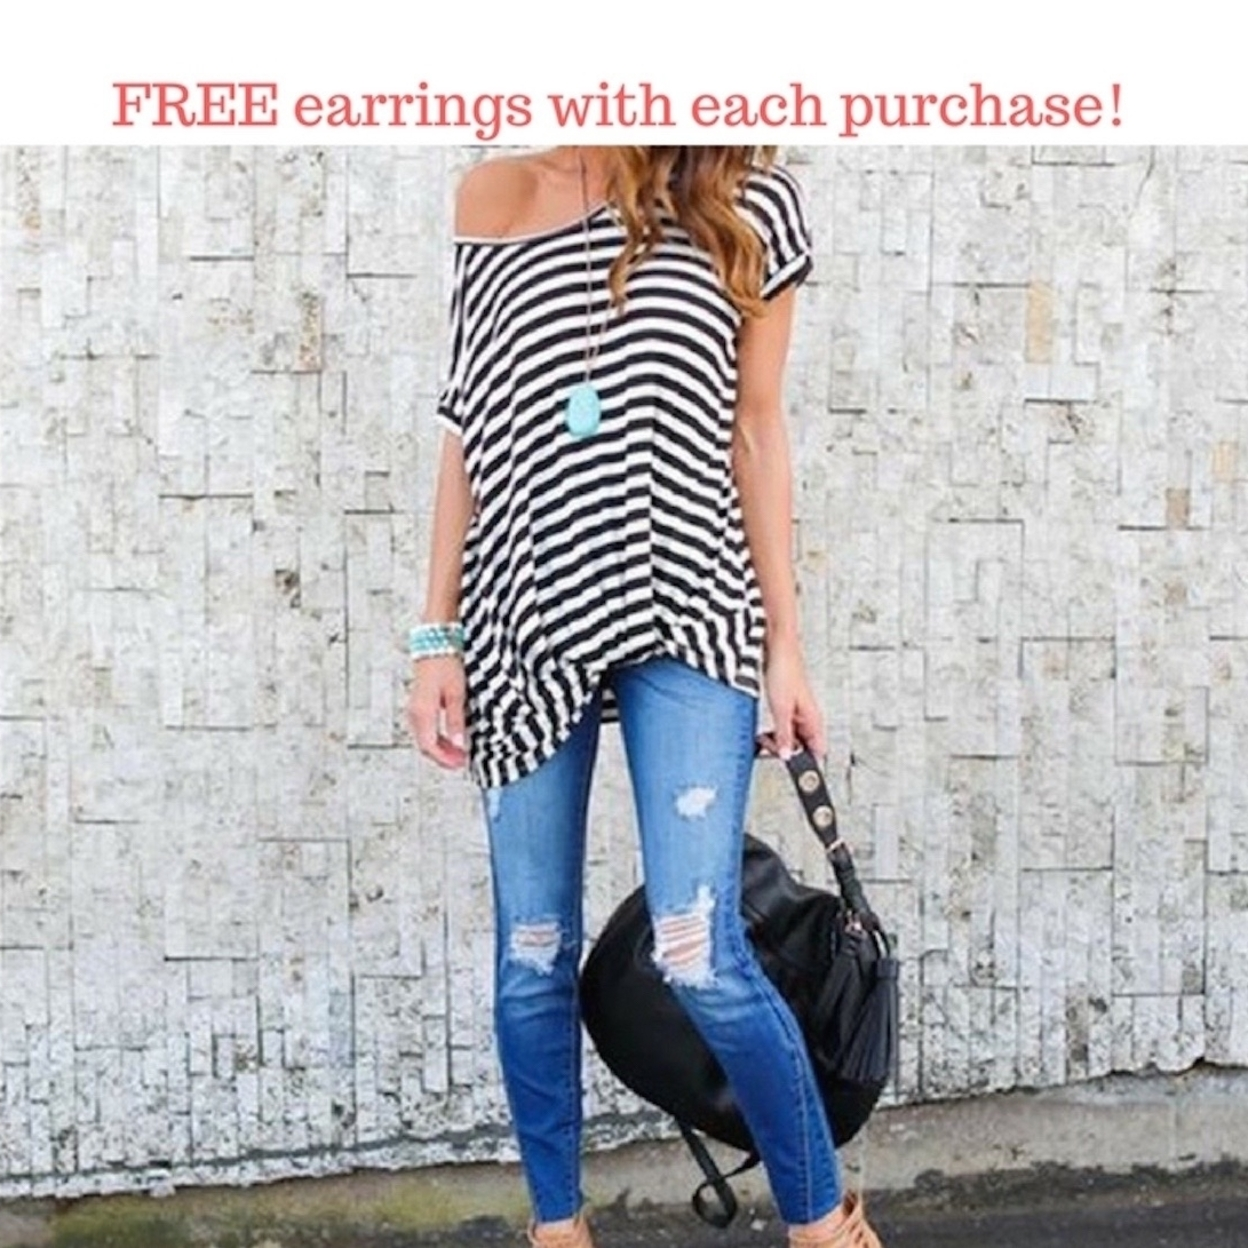 Soft and Loose Fit Trendy Twisted Striped Tee - S 591db39e2adf92146b155b42